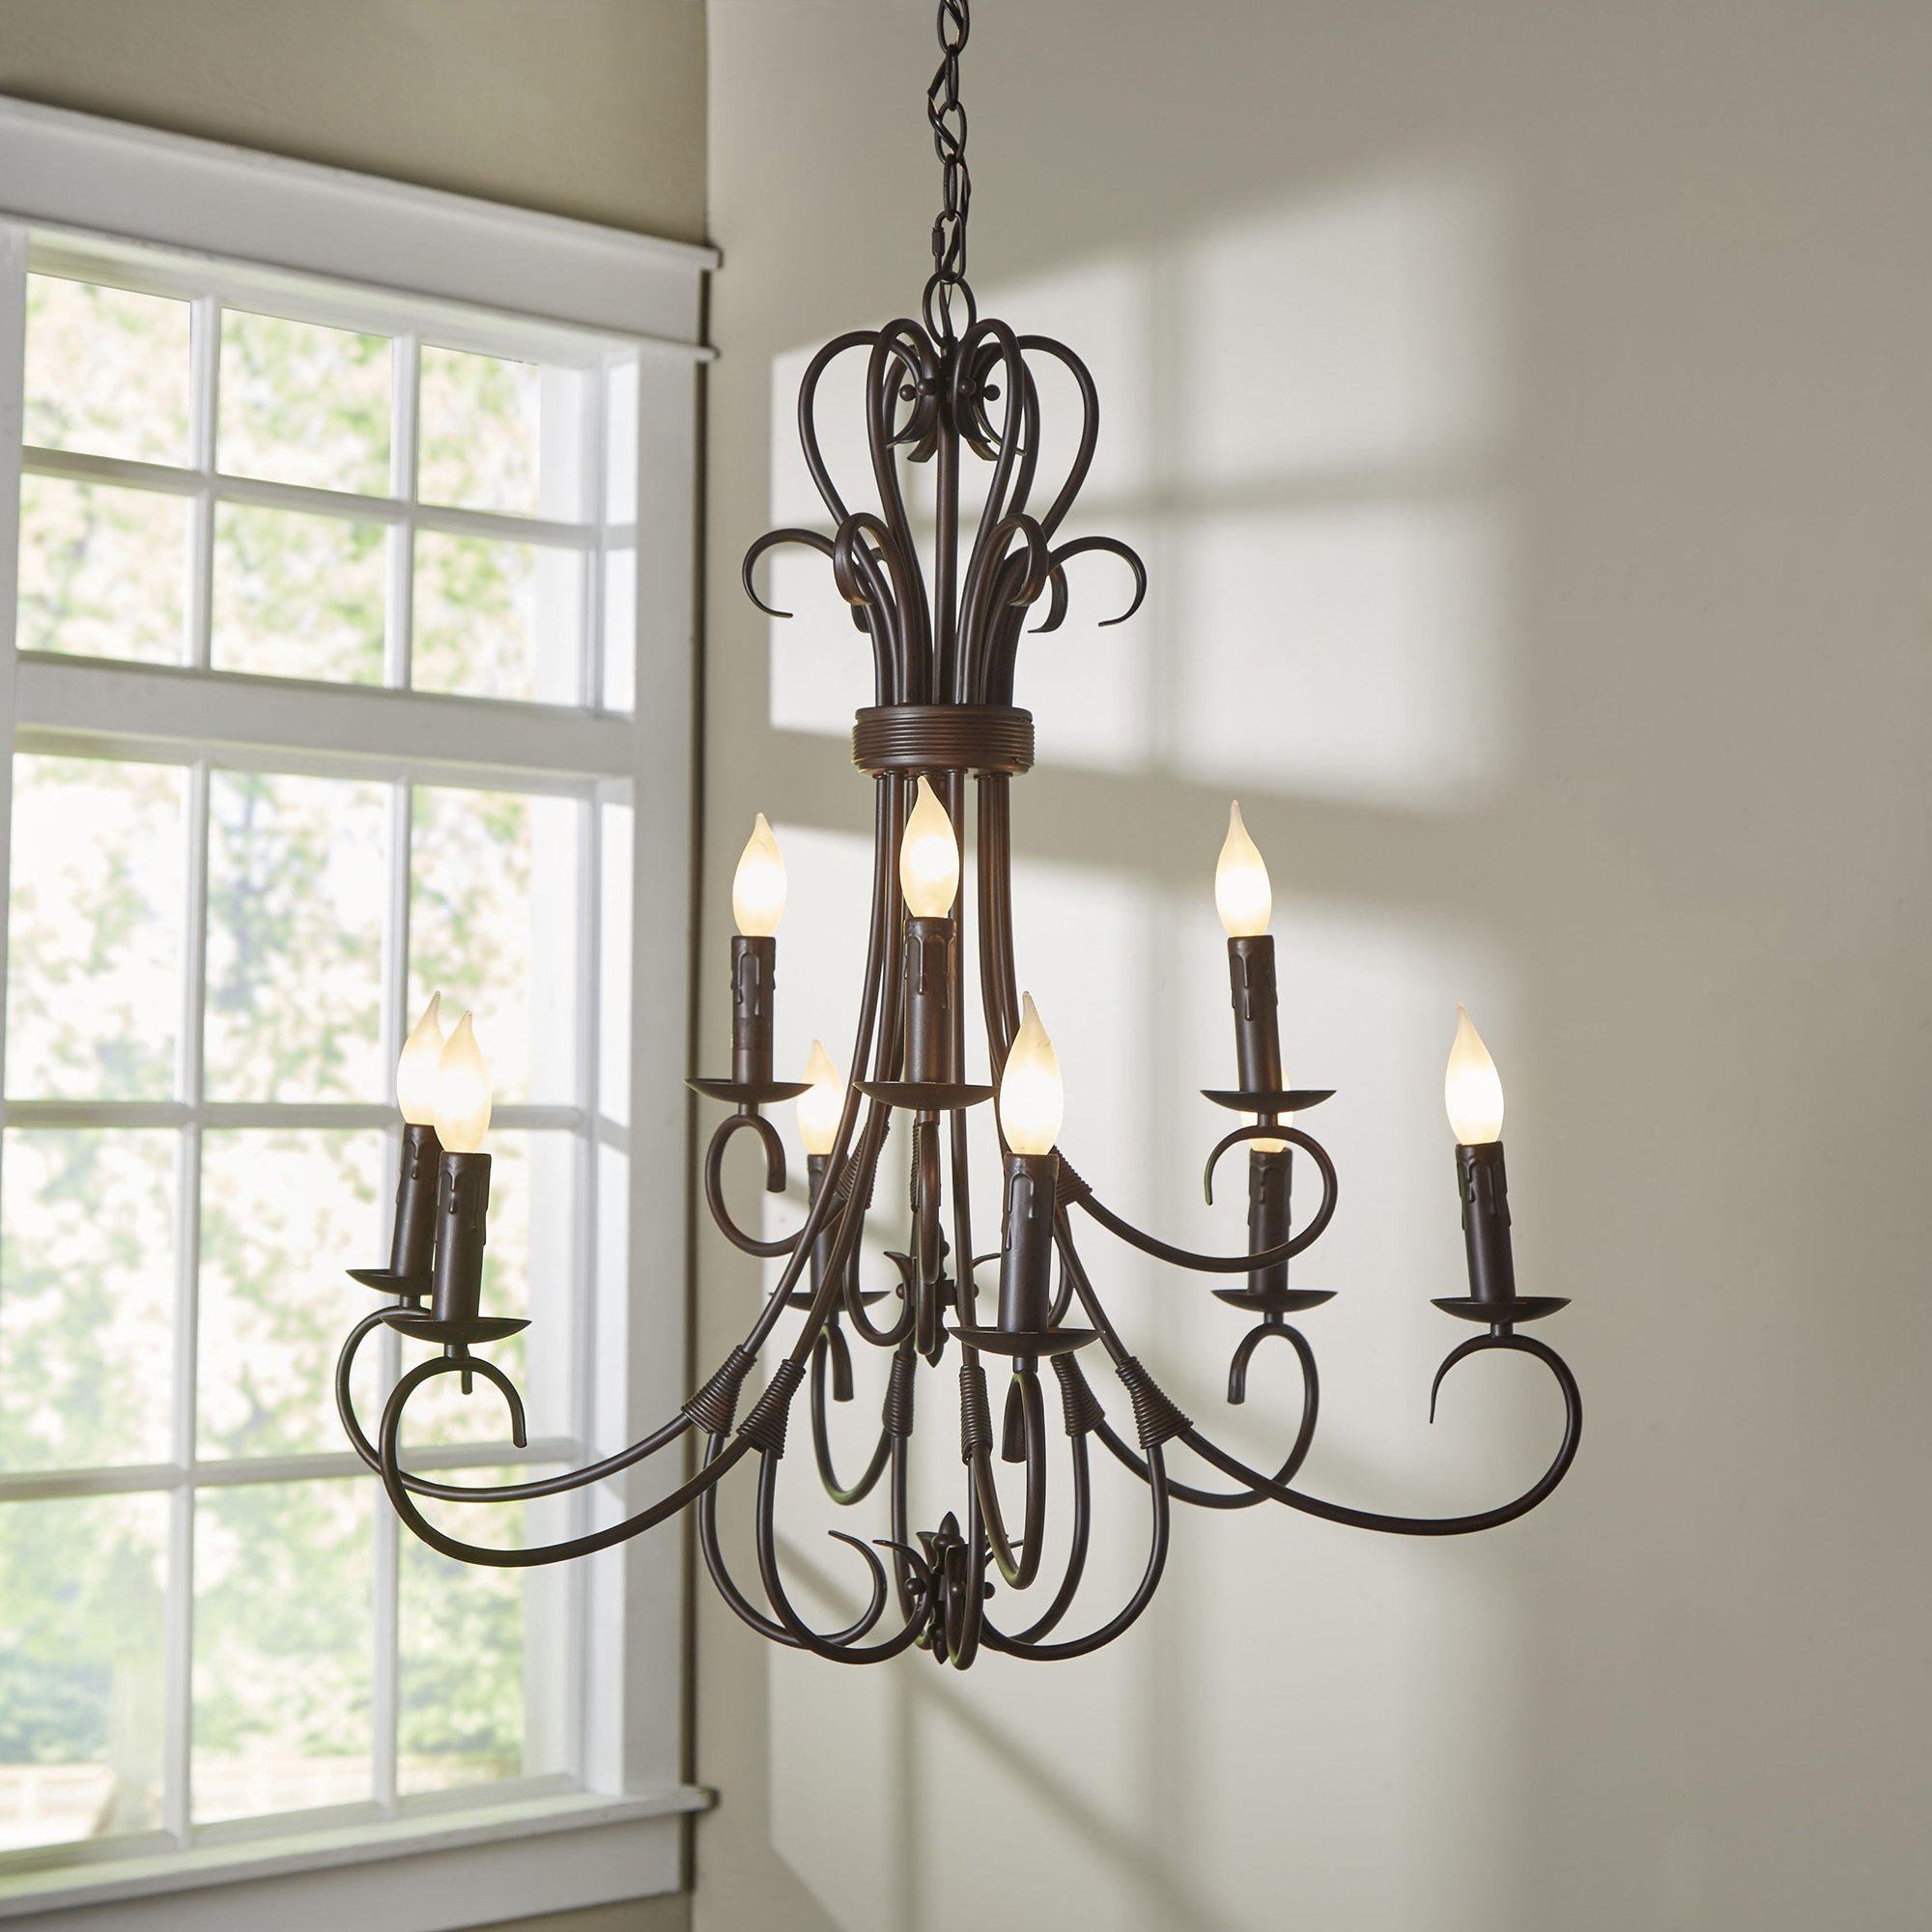 Gaines 9 Light Candle Style Chandelier In Gaines 5 Light Shaded Chandeliers (View 18 of 30)